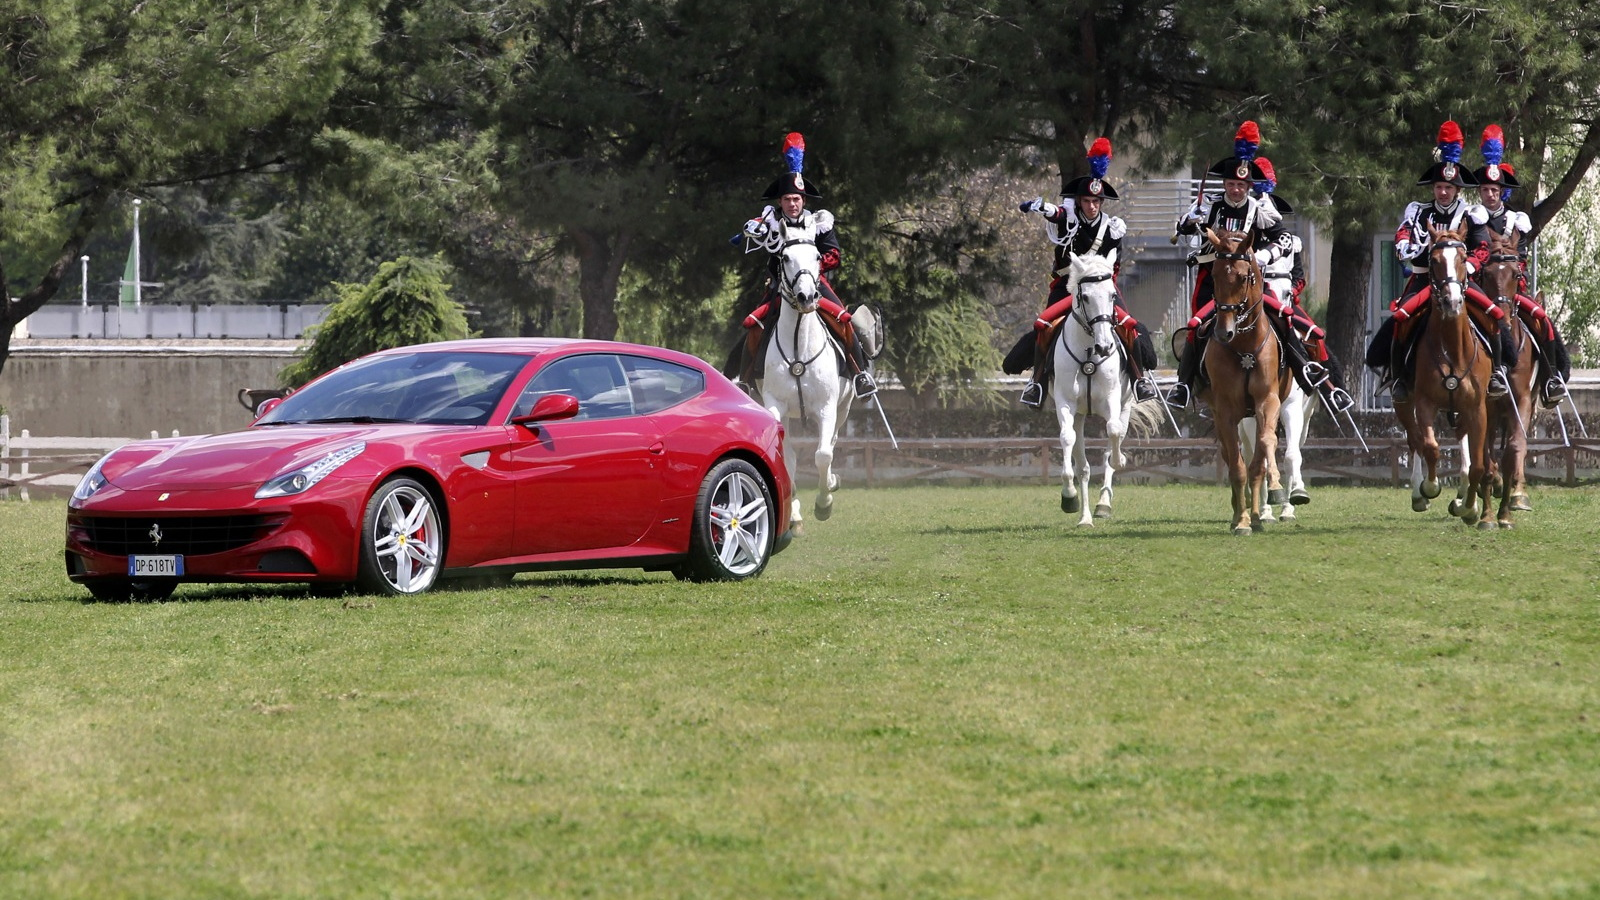 Ferrari salutes Queen Elizabeth II on her Diamond Jubilee.